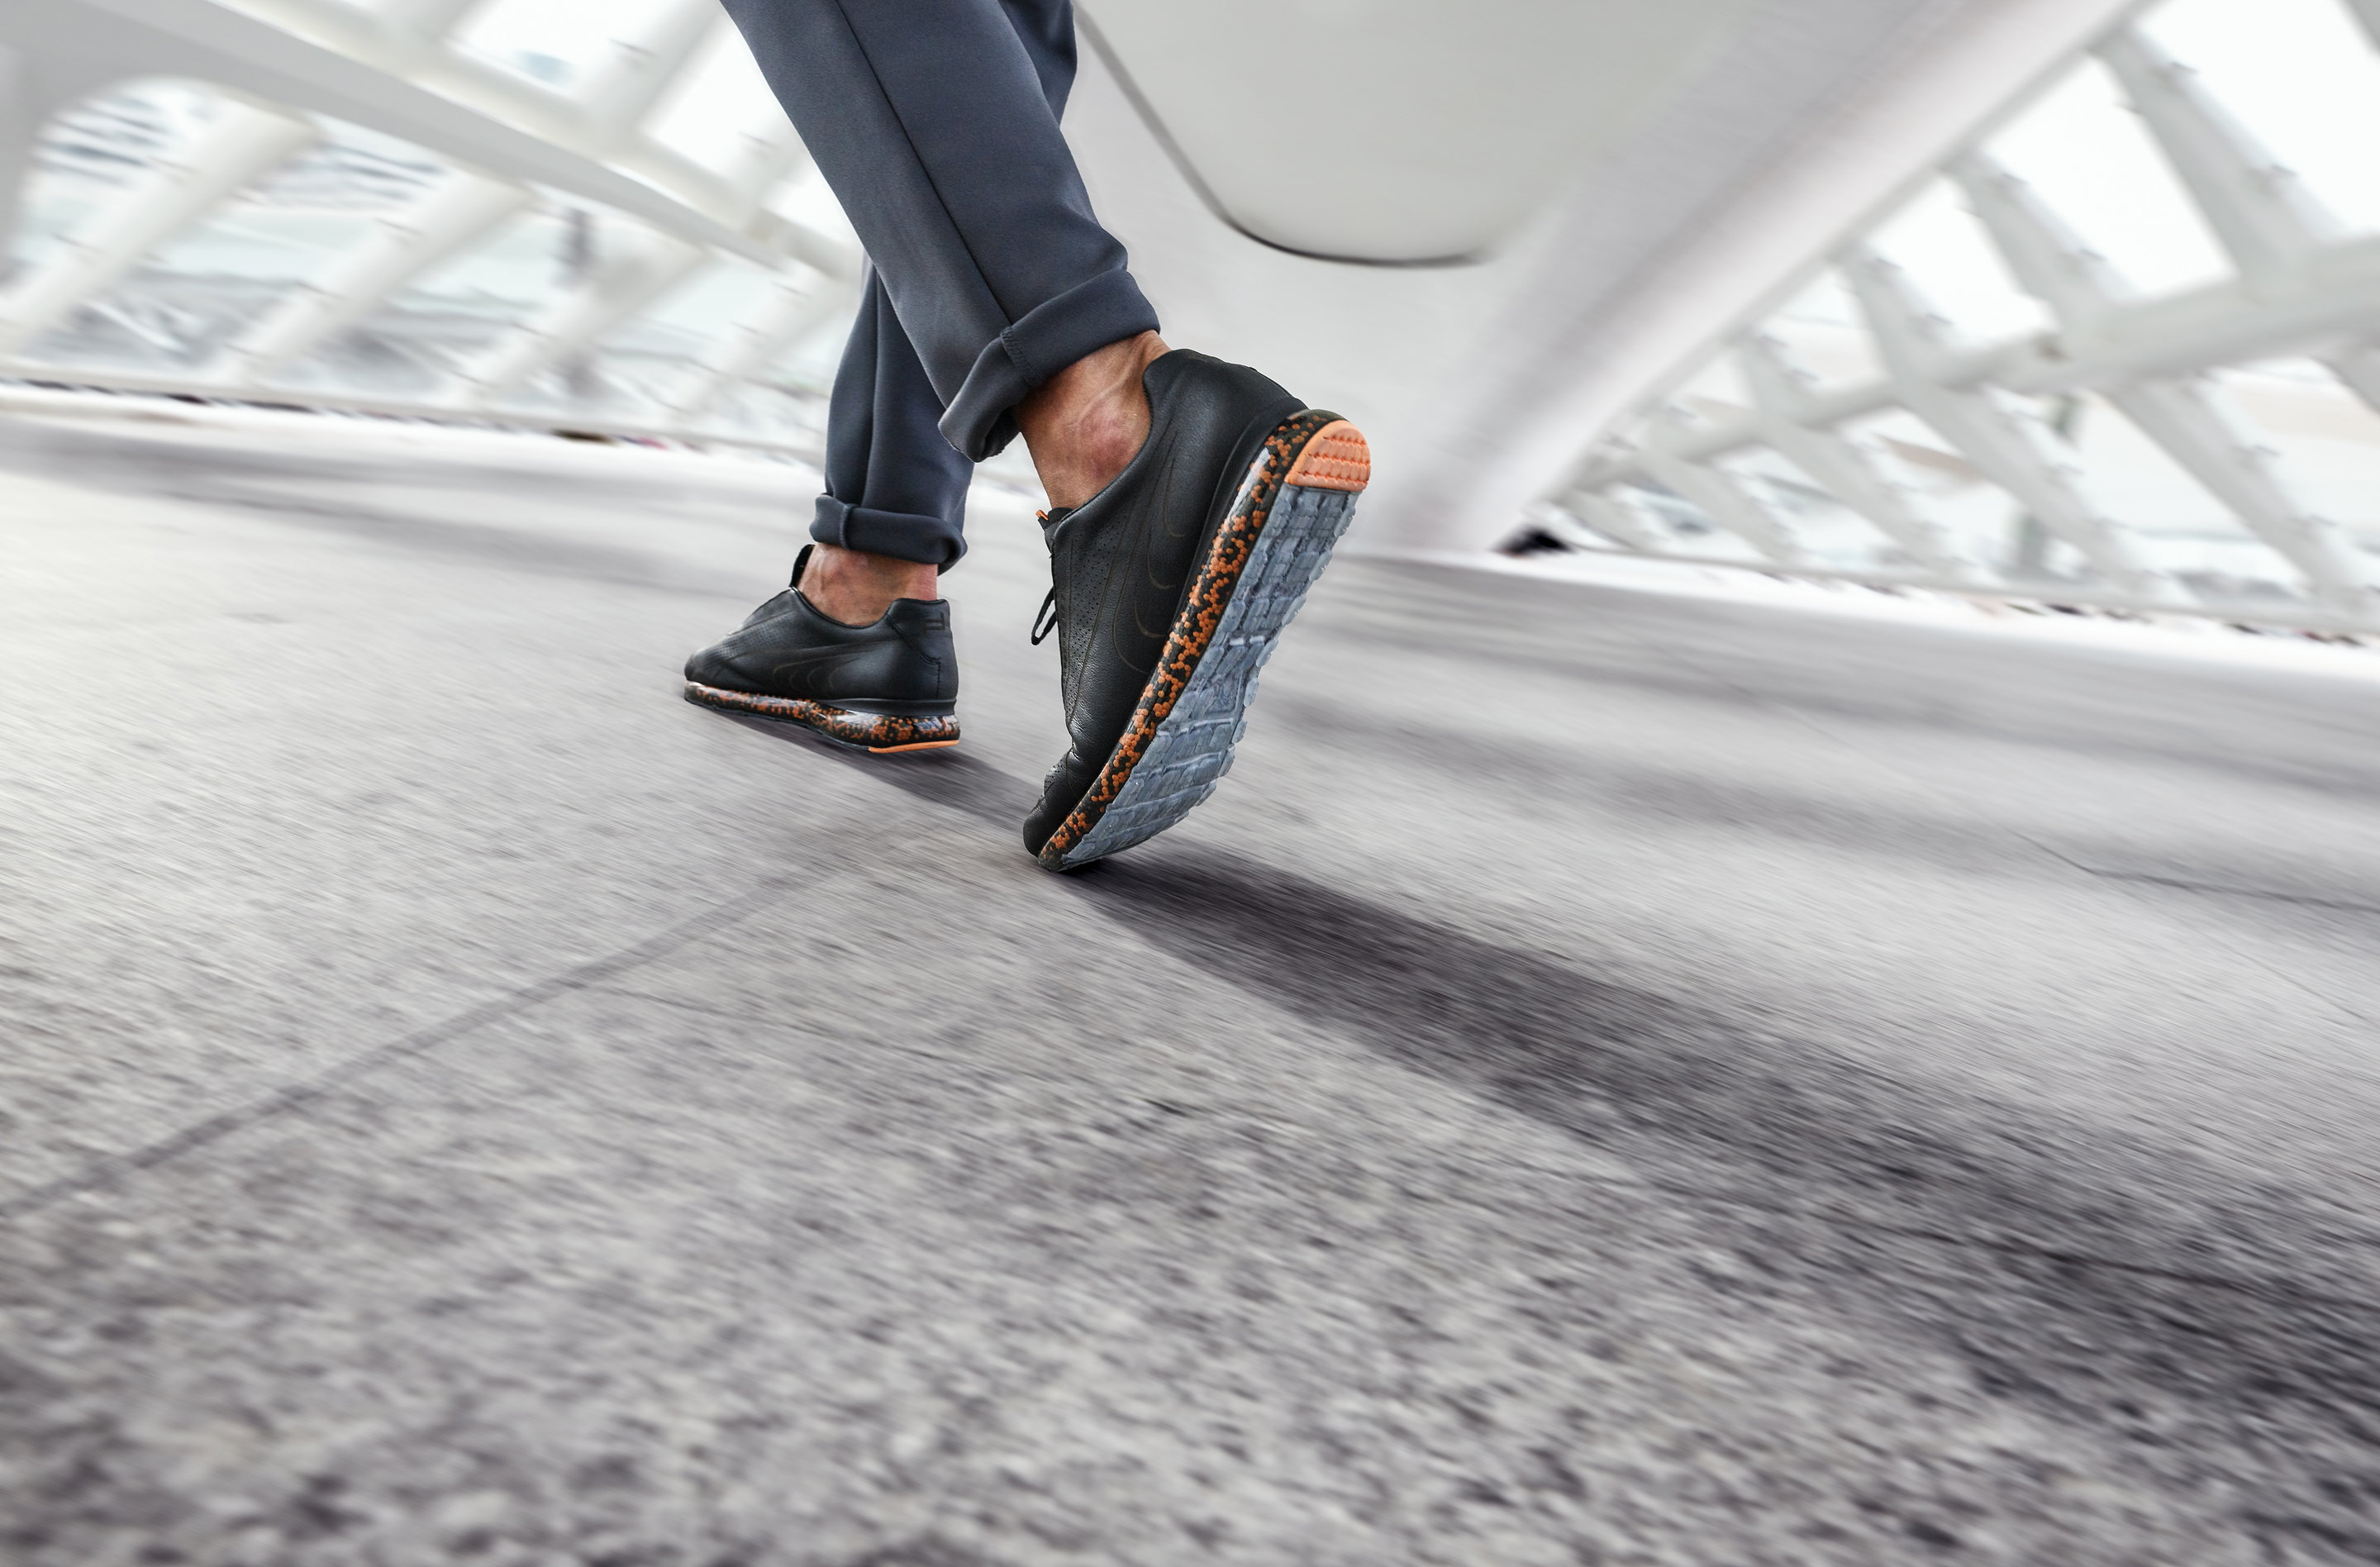 391c19284020b Porsche Design and PUMA Launch Lifestyle and Performance Wear for ...